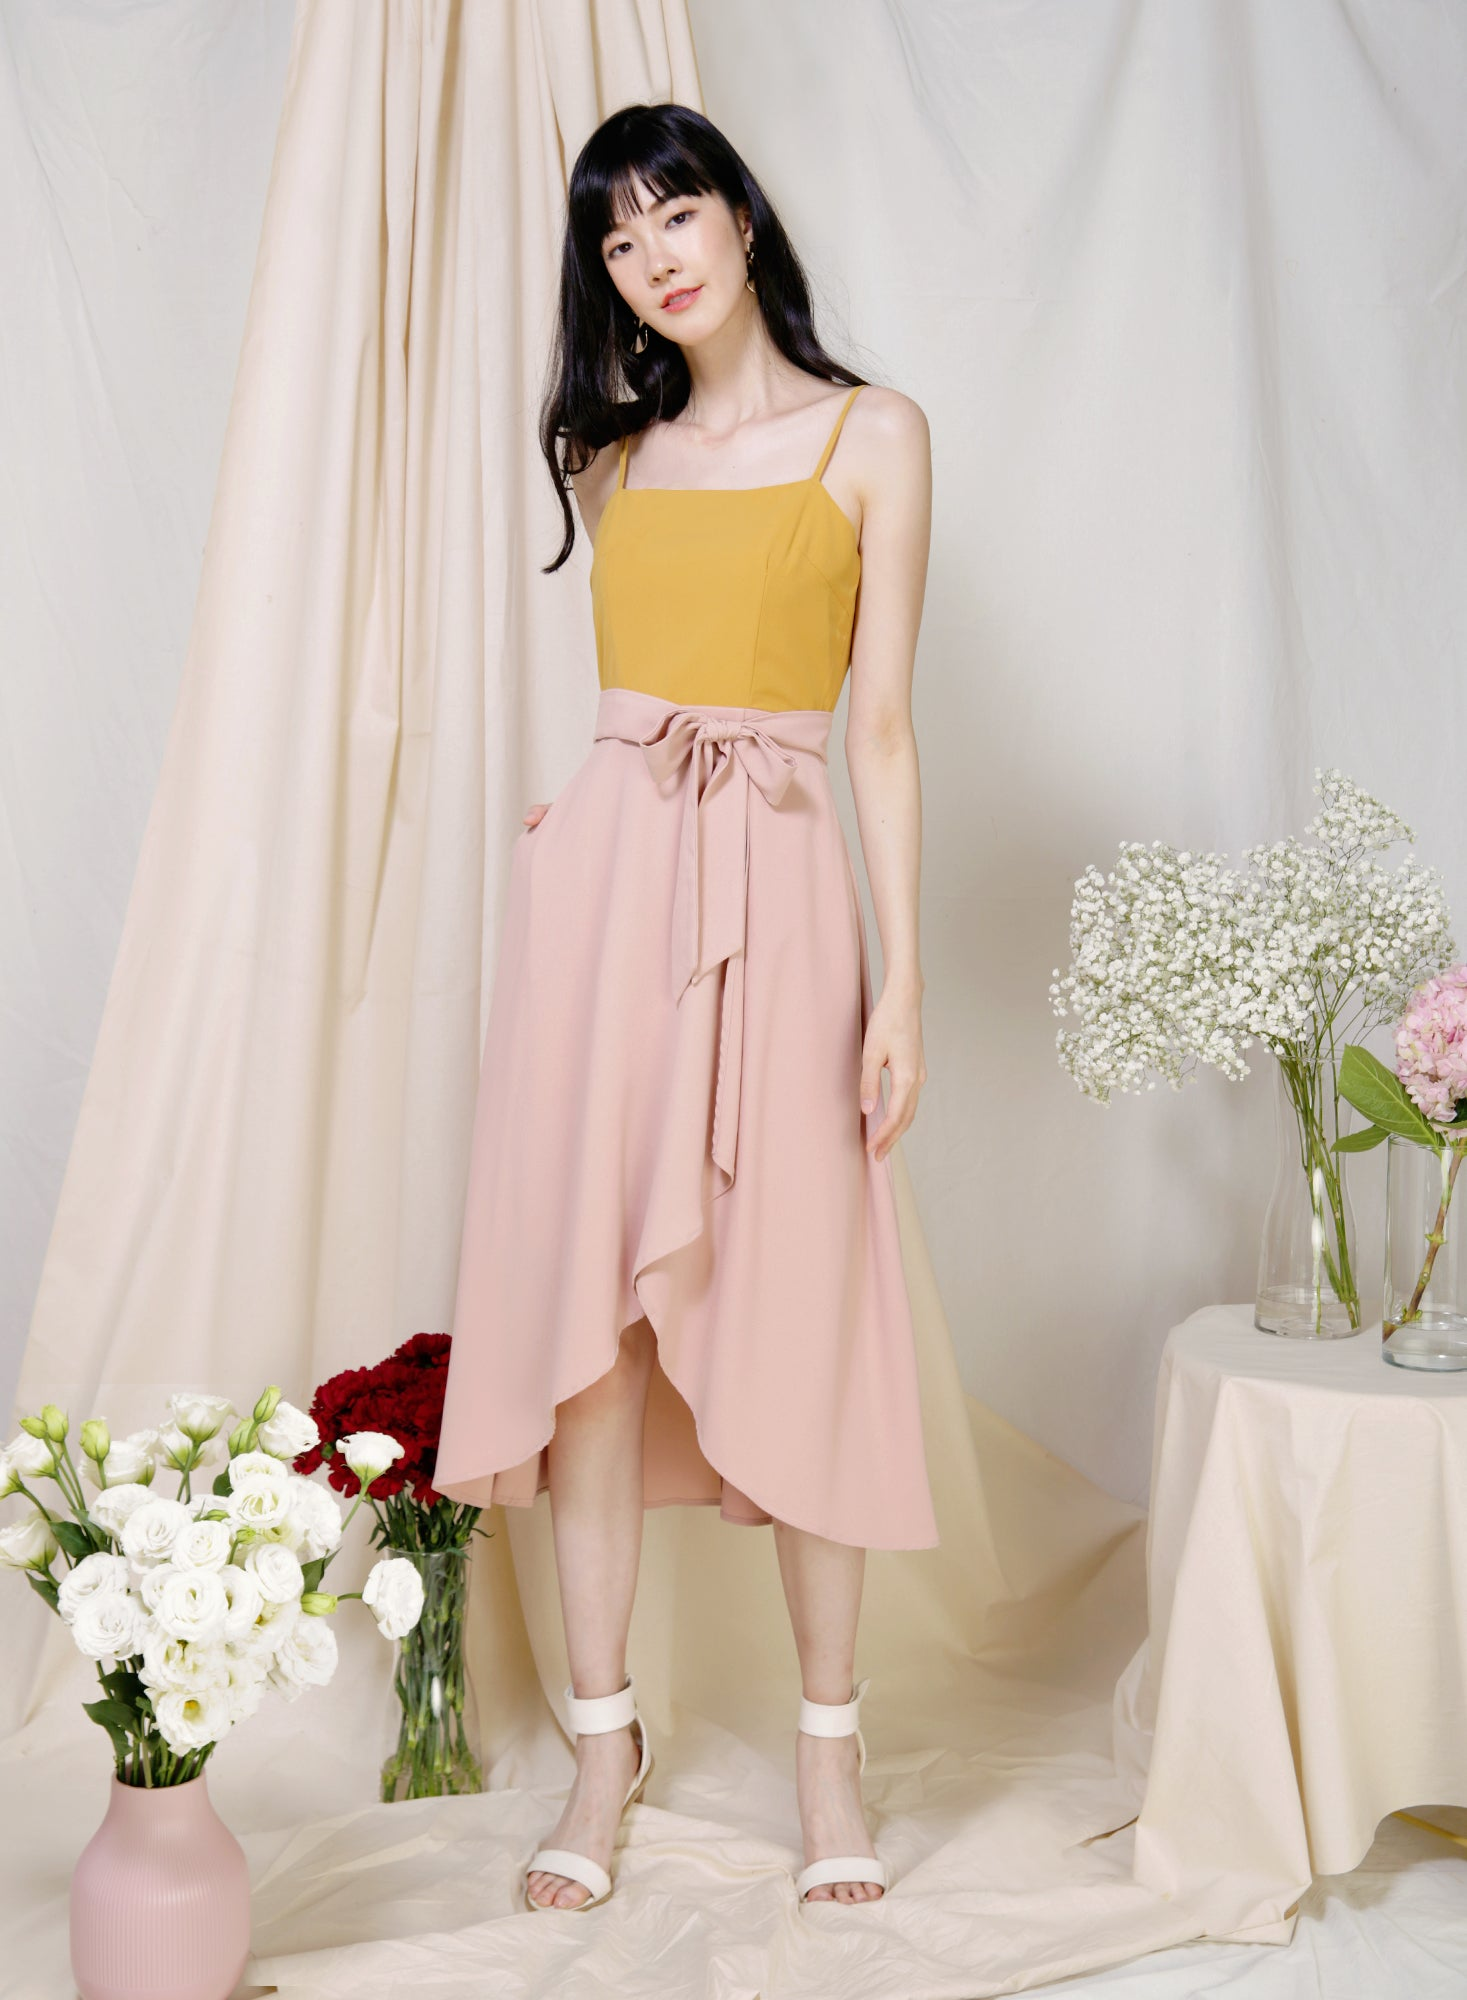 Memory Contrast Wrap Hem Dress (Marigold/Blush) at $ 43.50 only sold at And Well Dressed Online Fashion Store Singapore